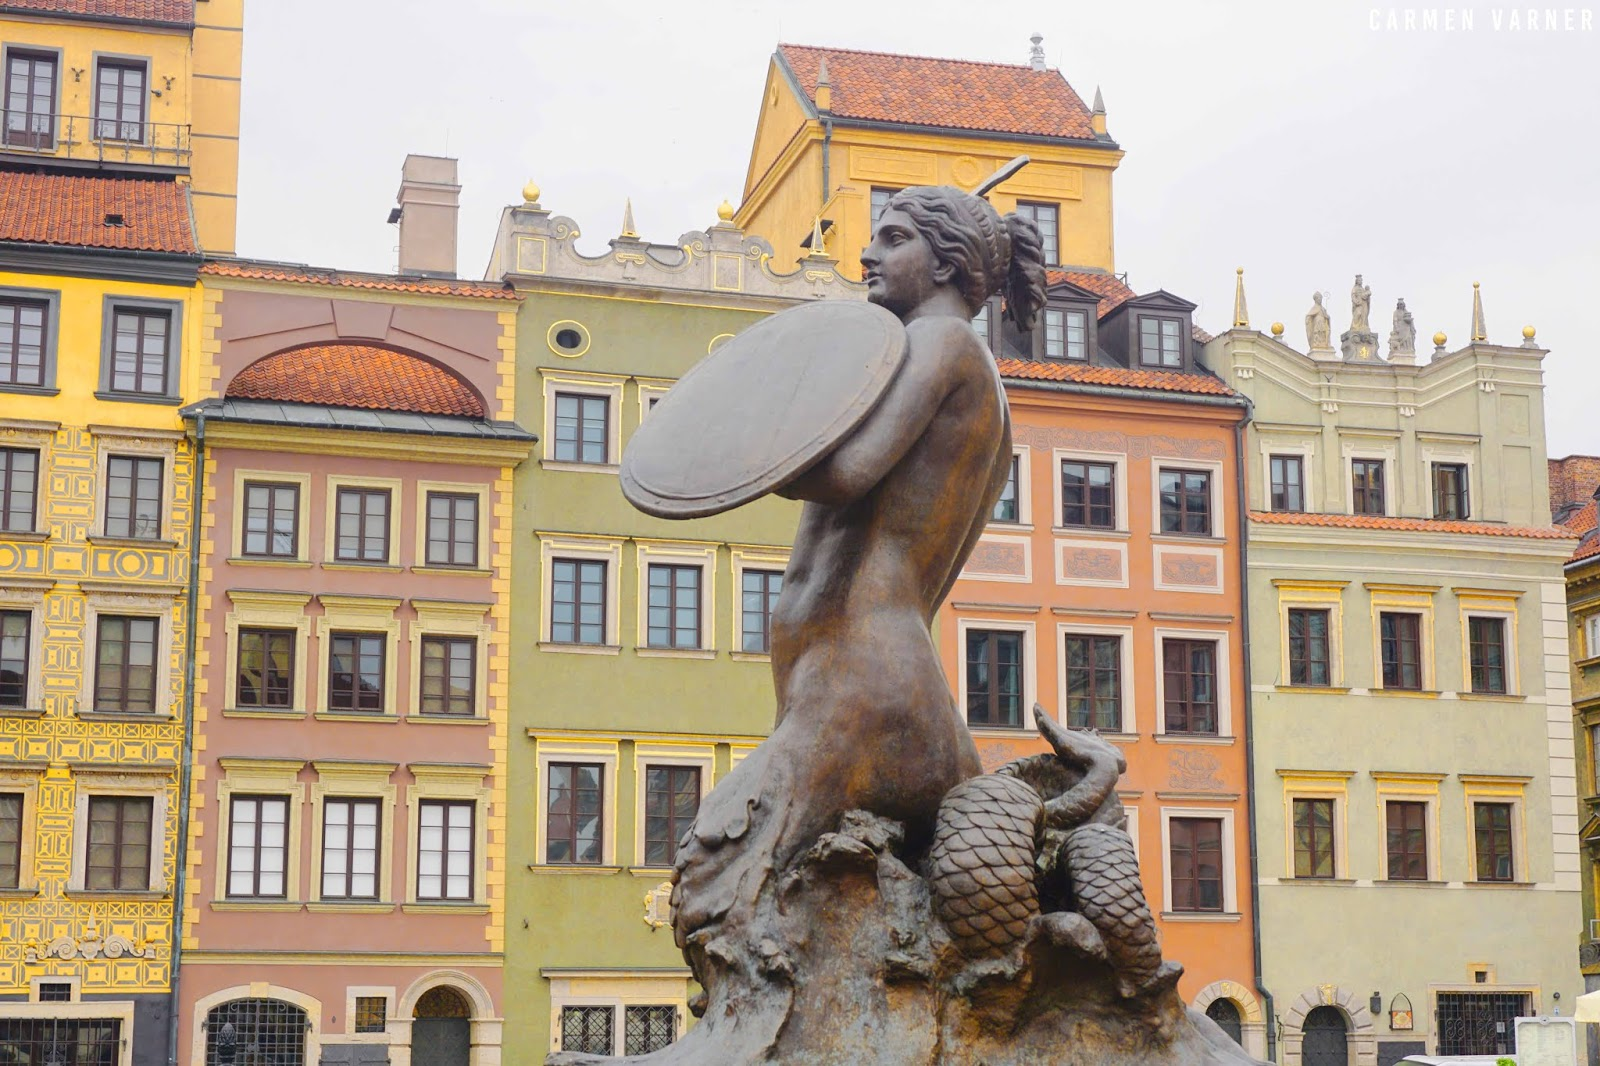 Mermaid in Old Town Warsaw Square Things to Do in Warsaw Sightseeing Historic Attractions